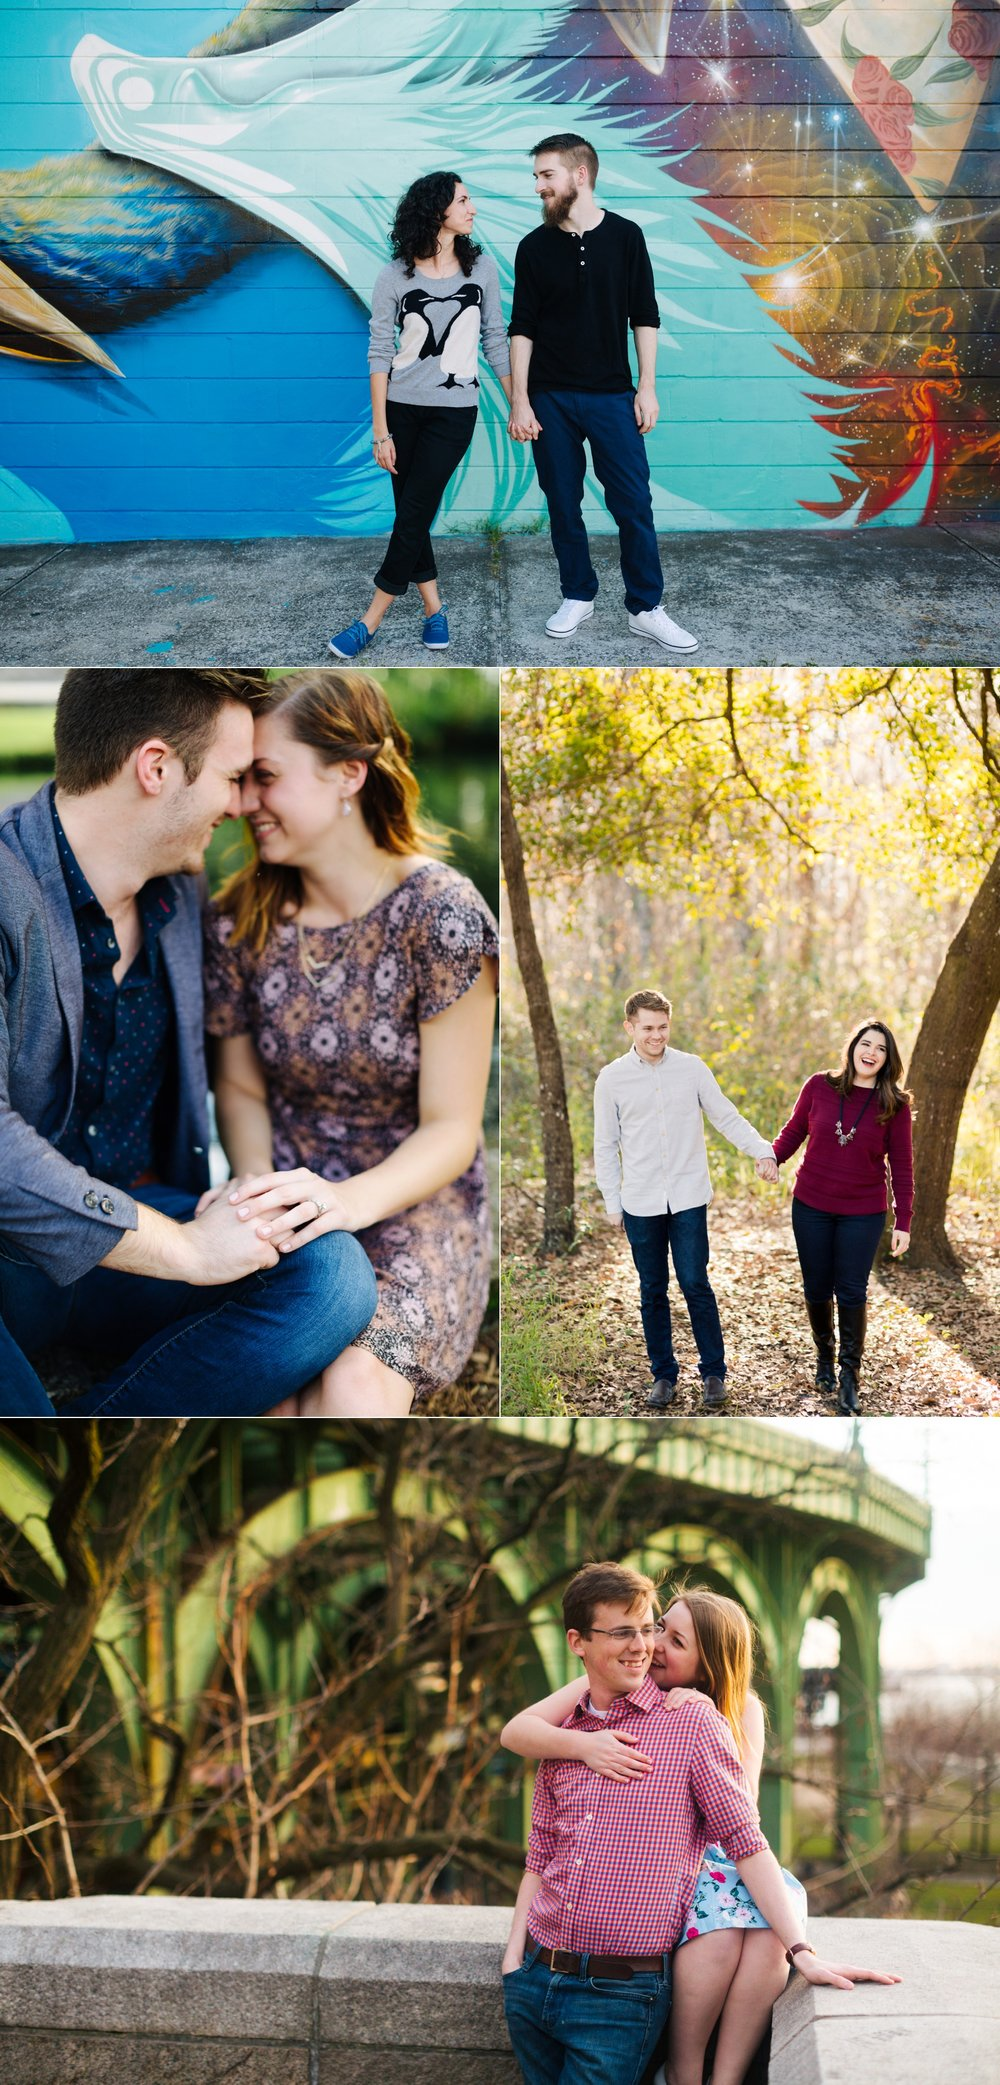 Jake & Katie Photography Best of Couples 2016-043.jpg